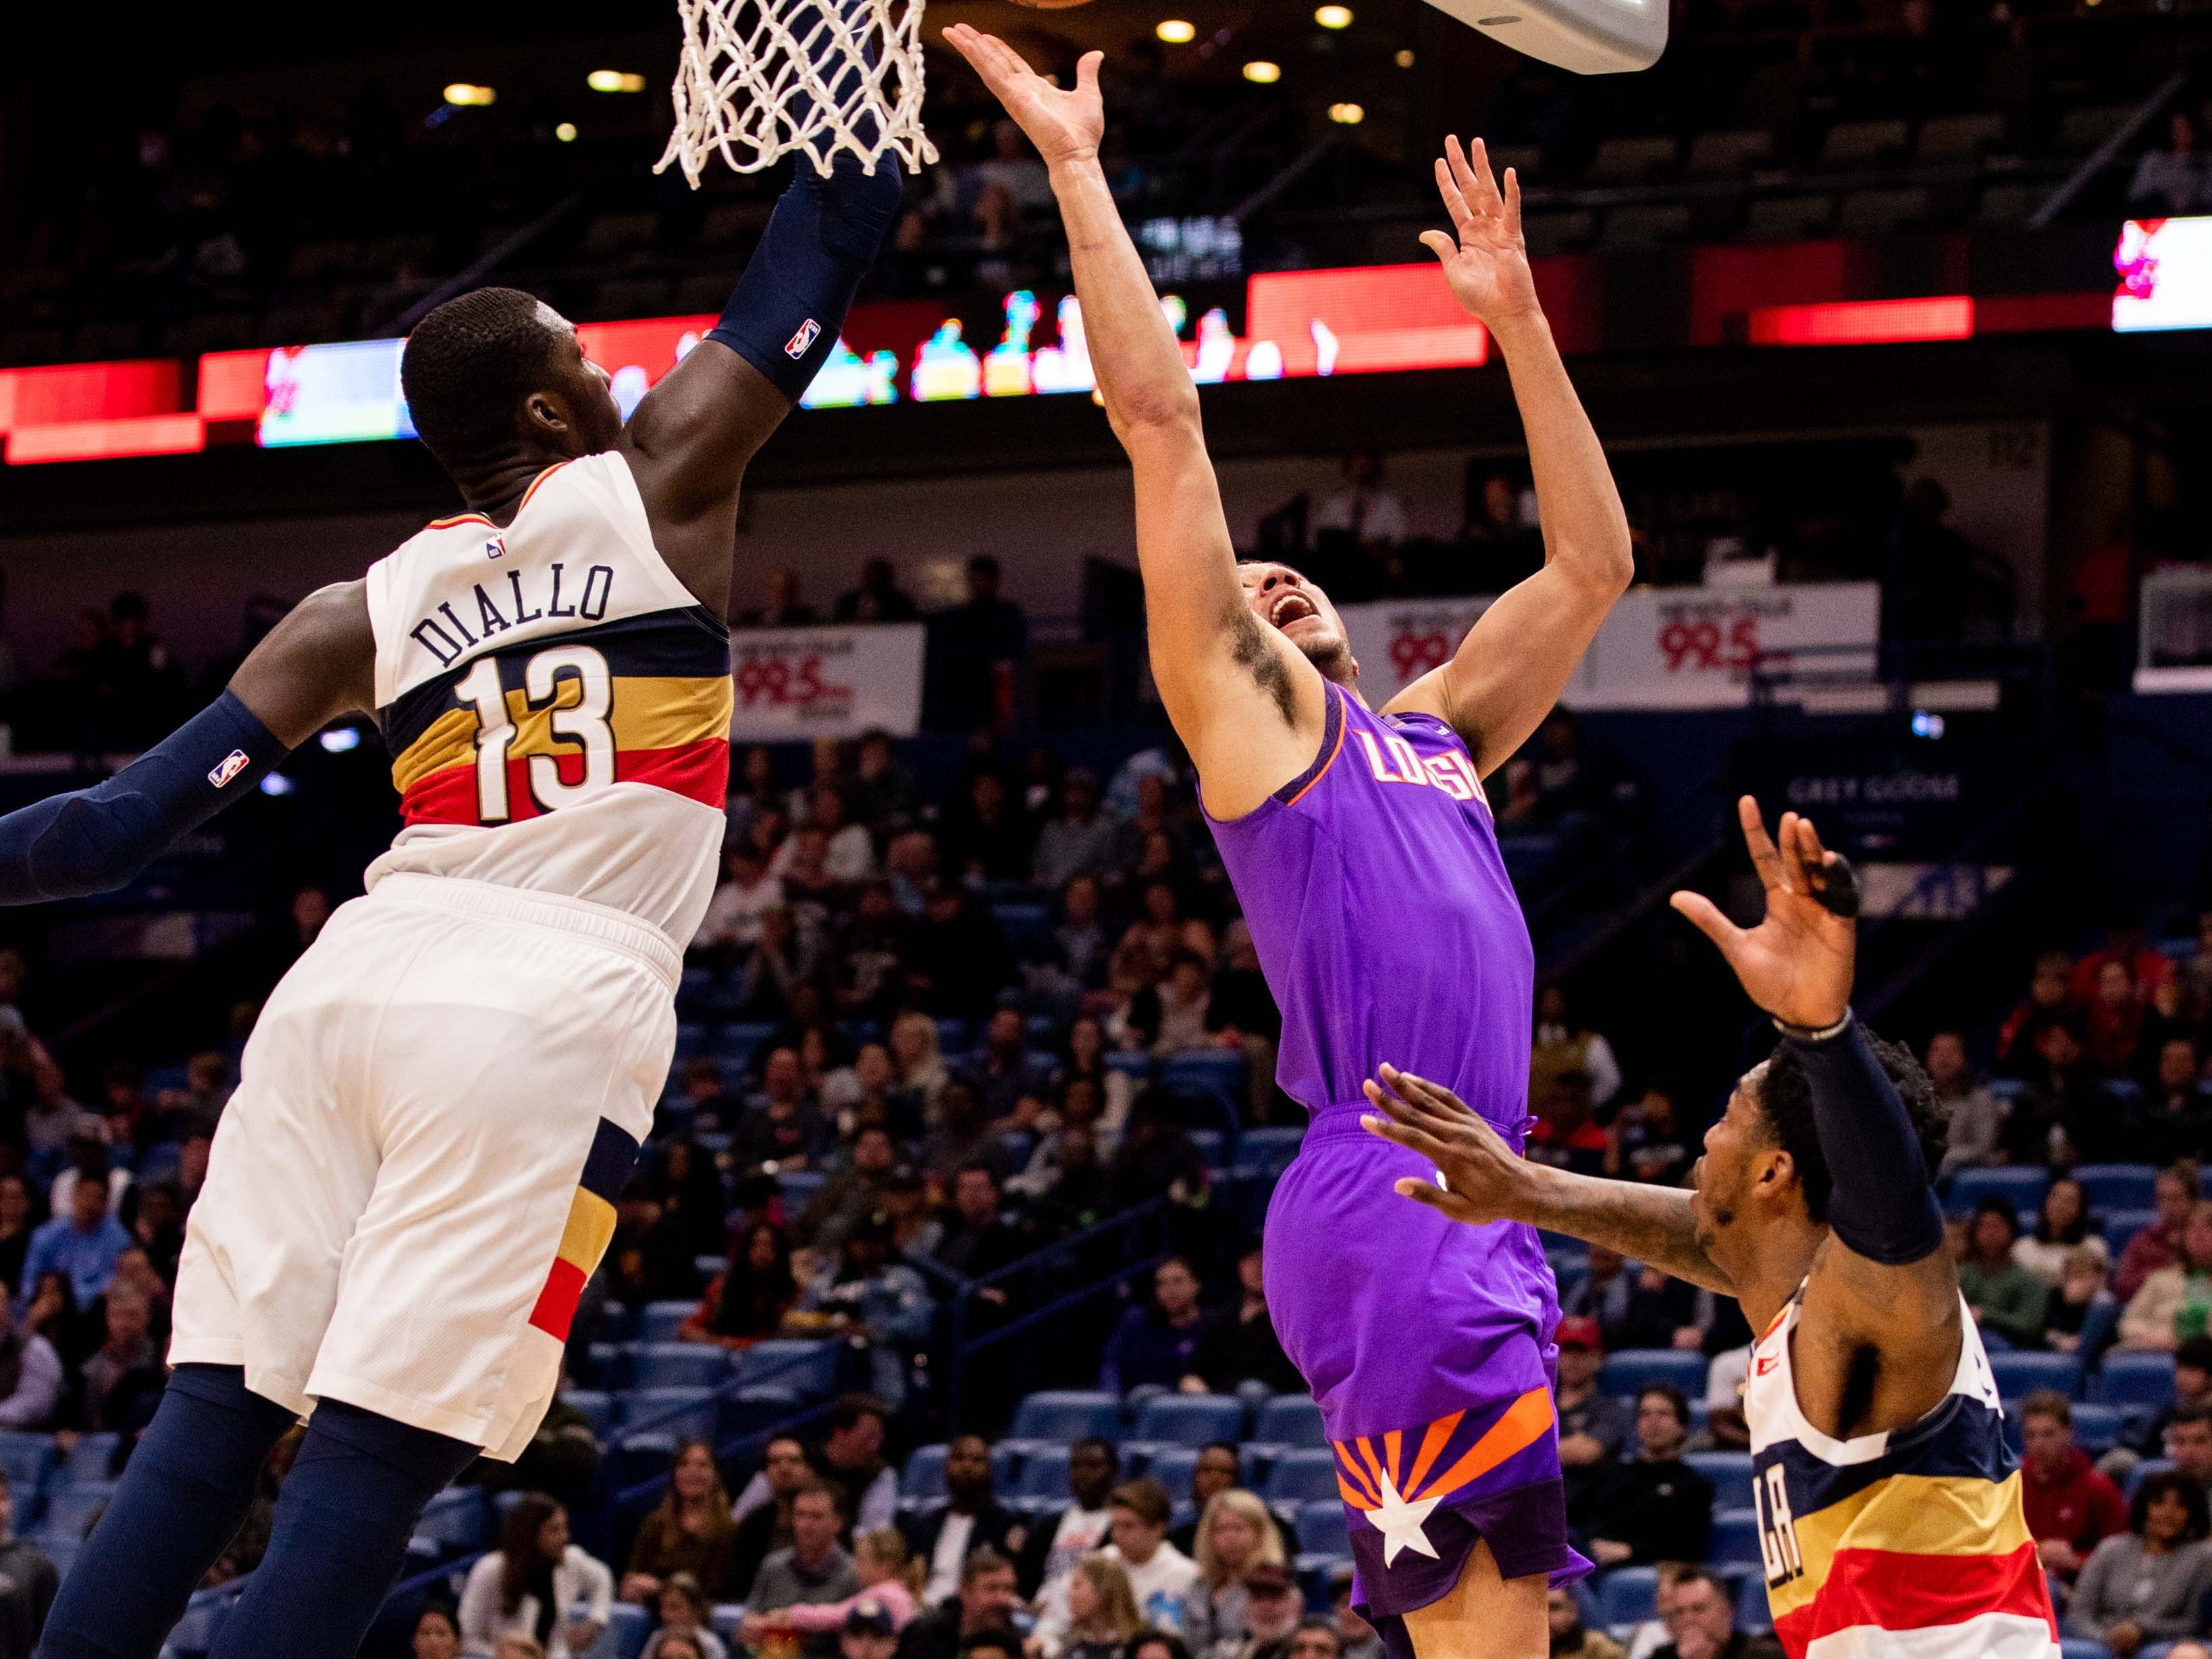 Mar 16, 2019; New Orleans, LA, USA; Phoenix Suns guard Devin Booker (1) shoots a jump shot against New Orleans Pelicans forward Cheick Diallo (13) during the first half at Smoothie King Center.